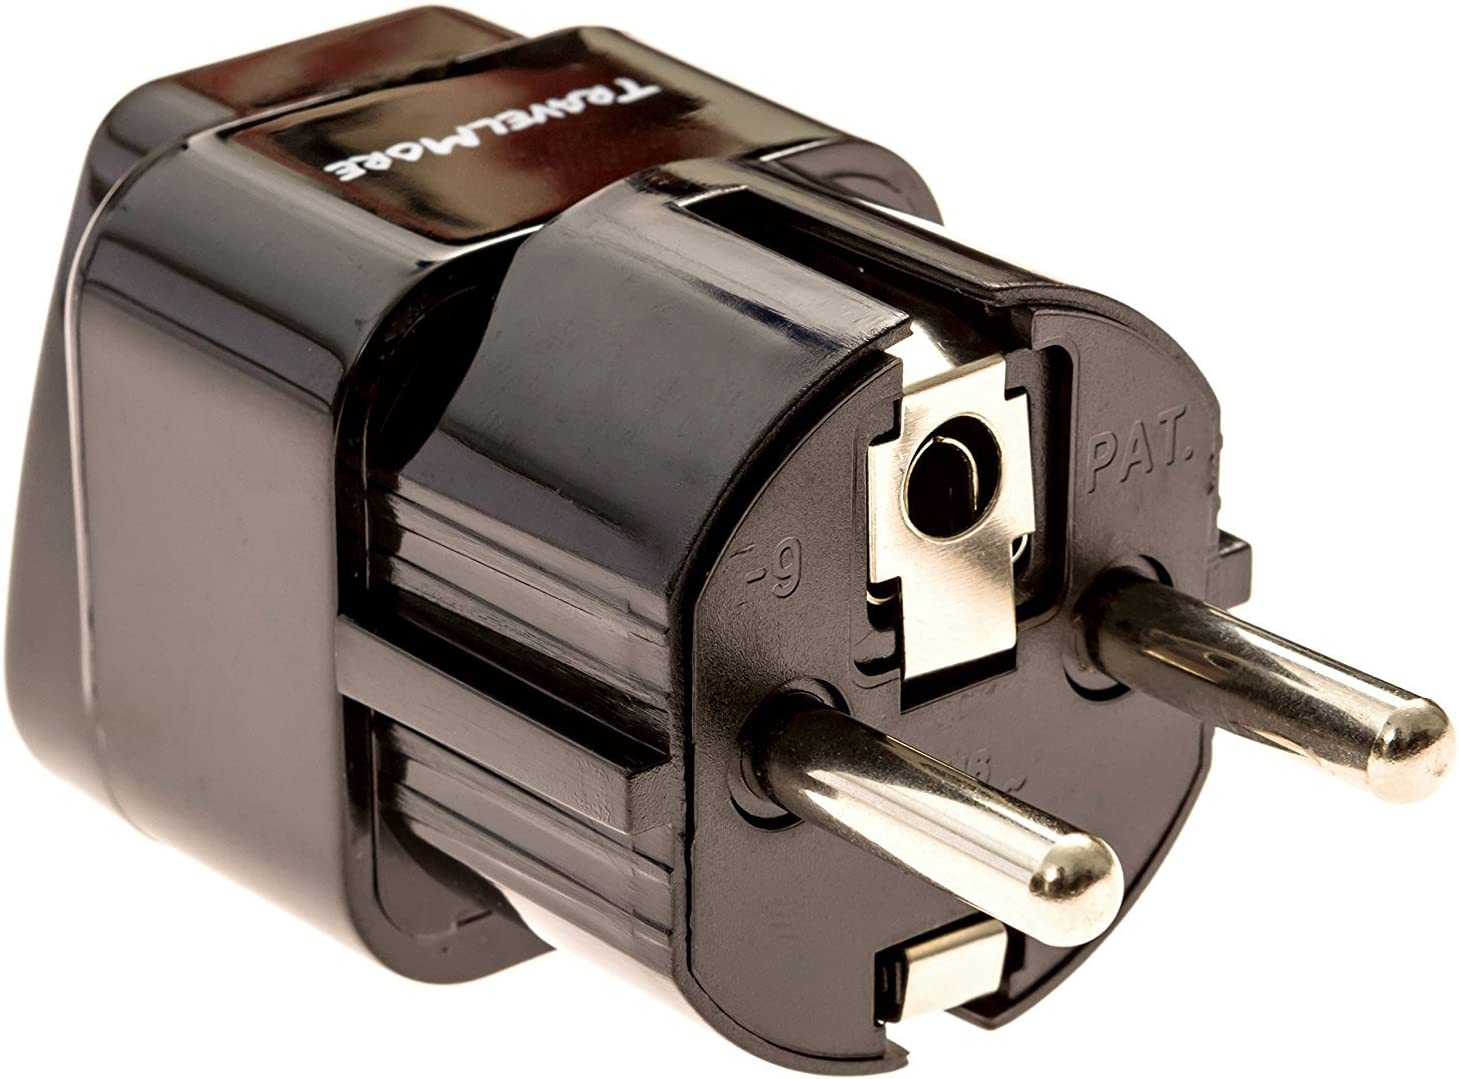 Europe Travel Adapter for European Outlets - Type C, Type E, Type F - Europe Plug Adapter Works in France, Spain, Germany, Netherlands, Belgium, Poland, Russia